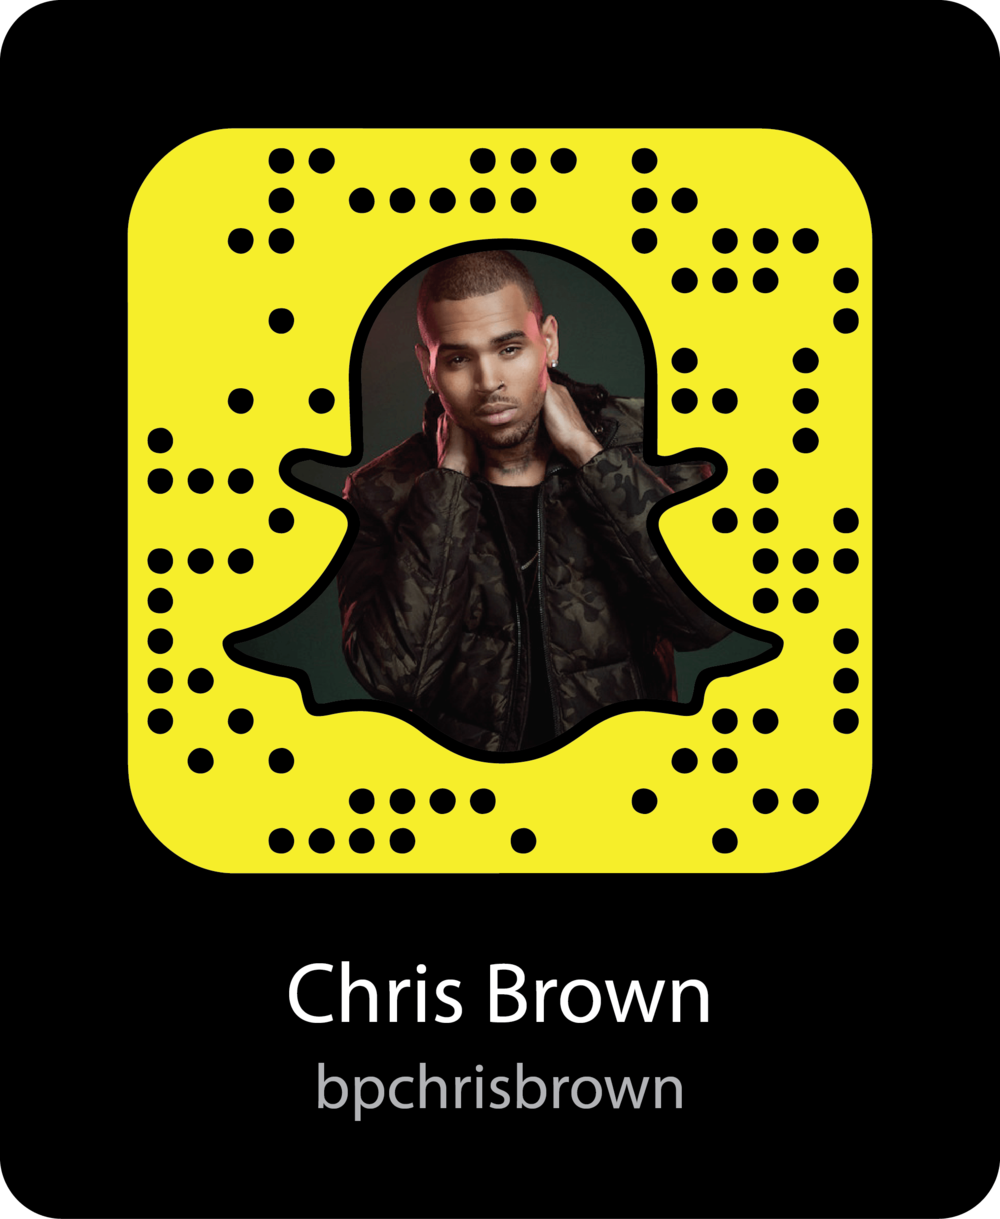 chris-brown-celebrity-snapchat-snapcode